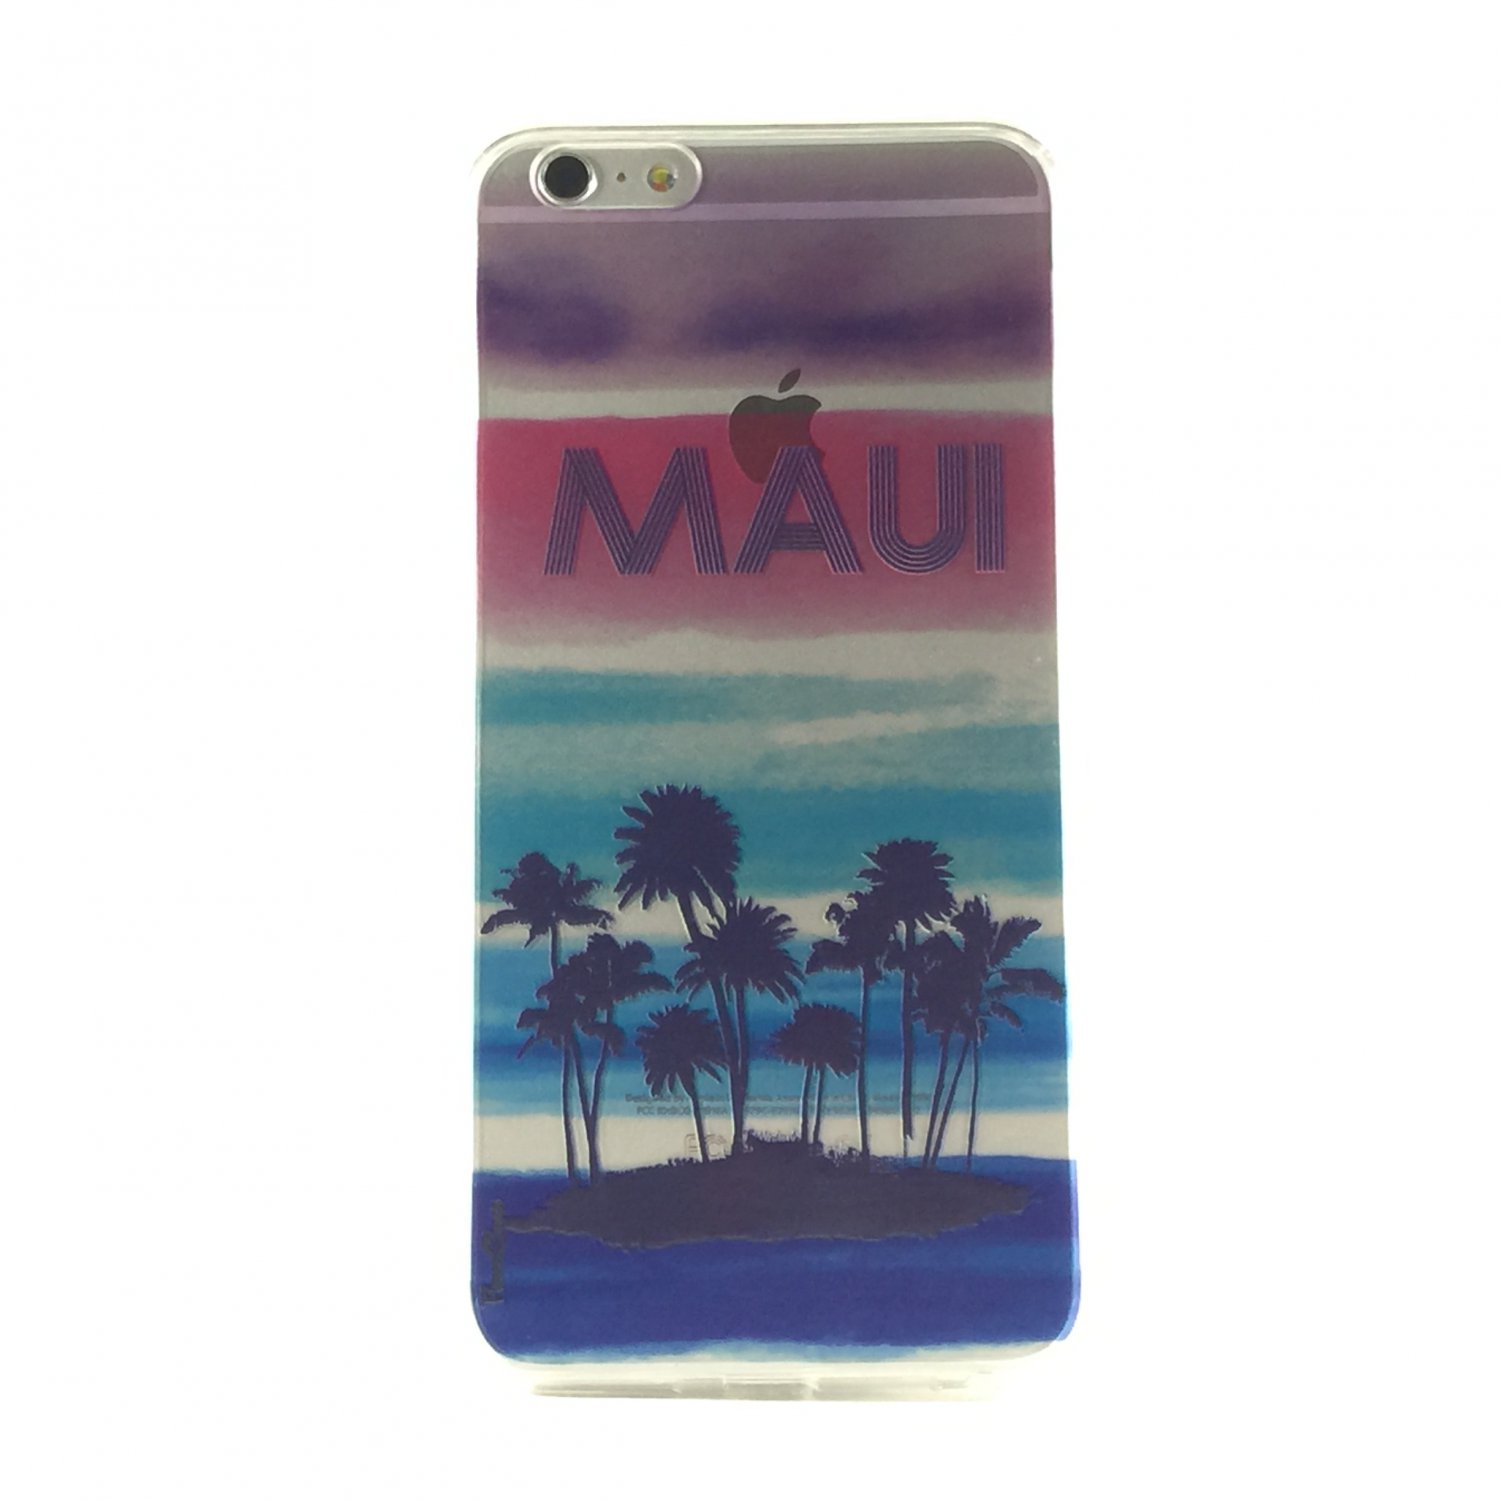 Maui - New Beach Maui Cell Phone Cases iPhone 6 plus ip6 plus